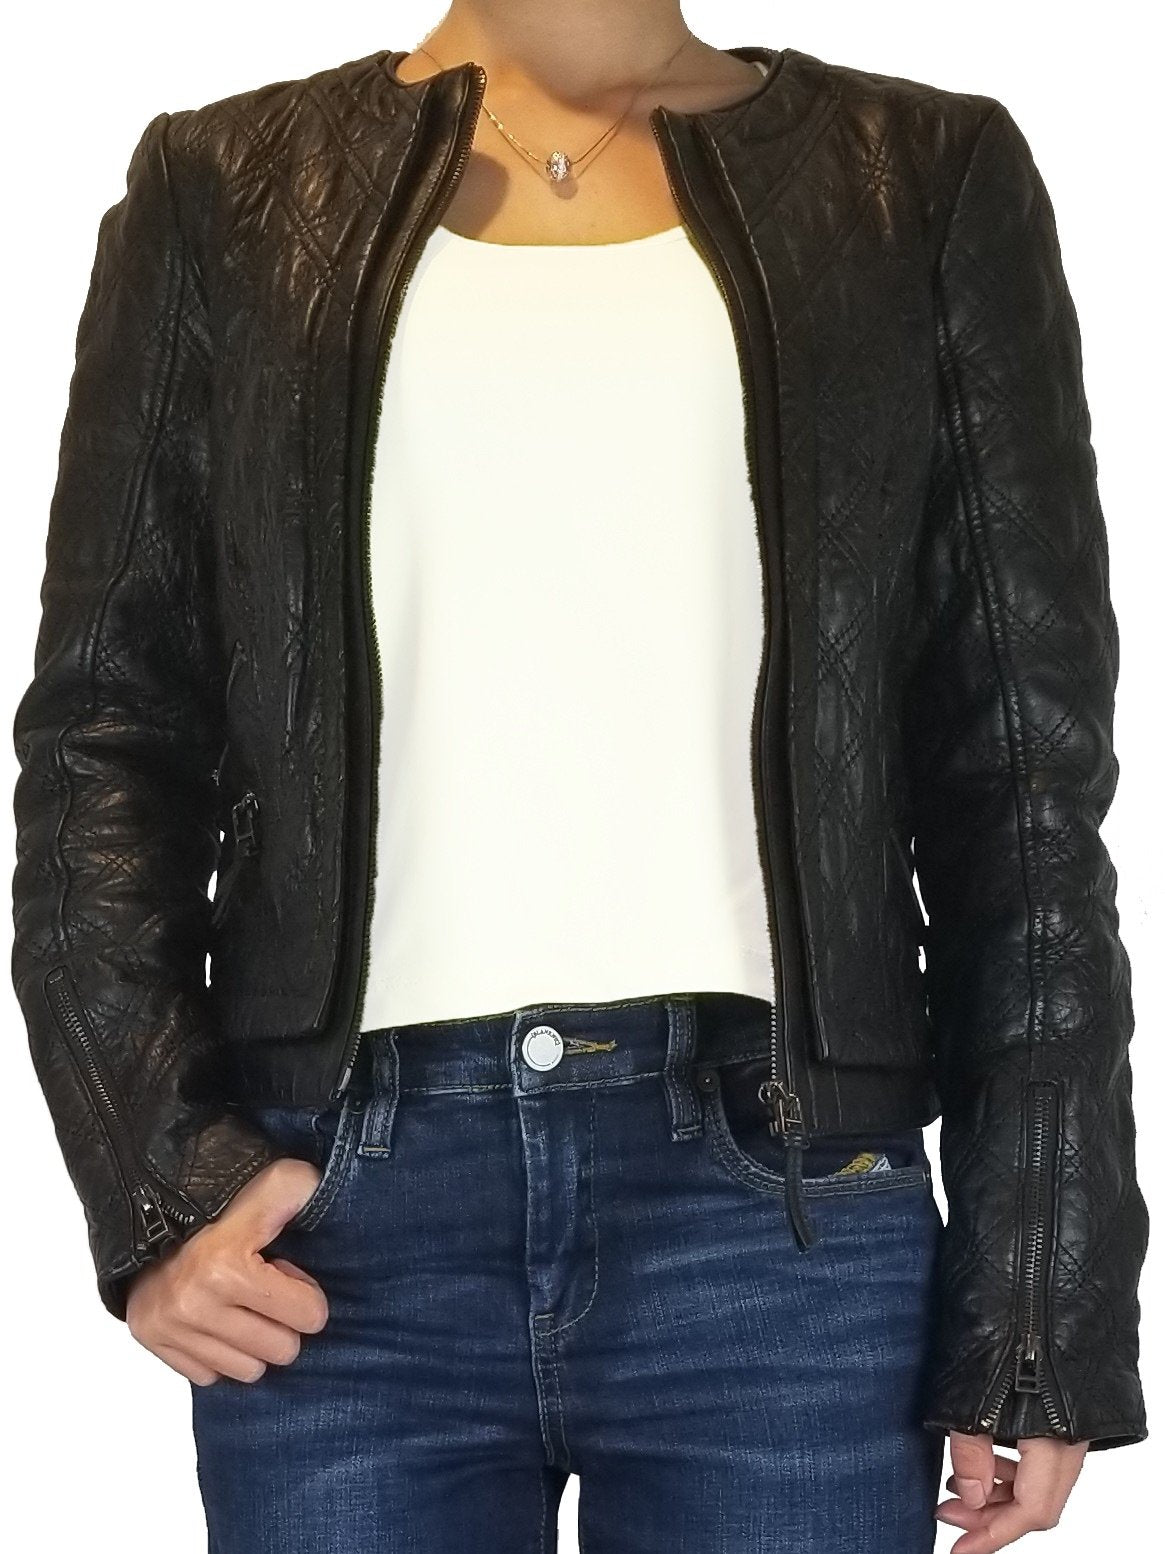 Zara Real Leather Jacket, Let your confidence shine through a kickass leather jacket., Black, 100% Leather, women's Jackets & Coats, women's Black Jackets & Coats, Zara women's Jackets & Coats, jacket, women's vintage leather moto jacket, women's designer leather jacket, women's black leather moto jacket, fashion